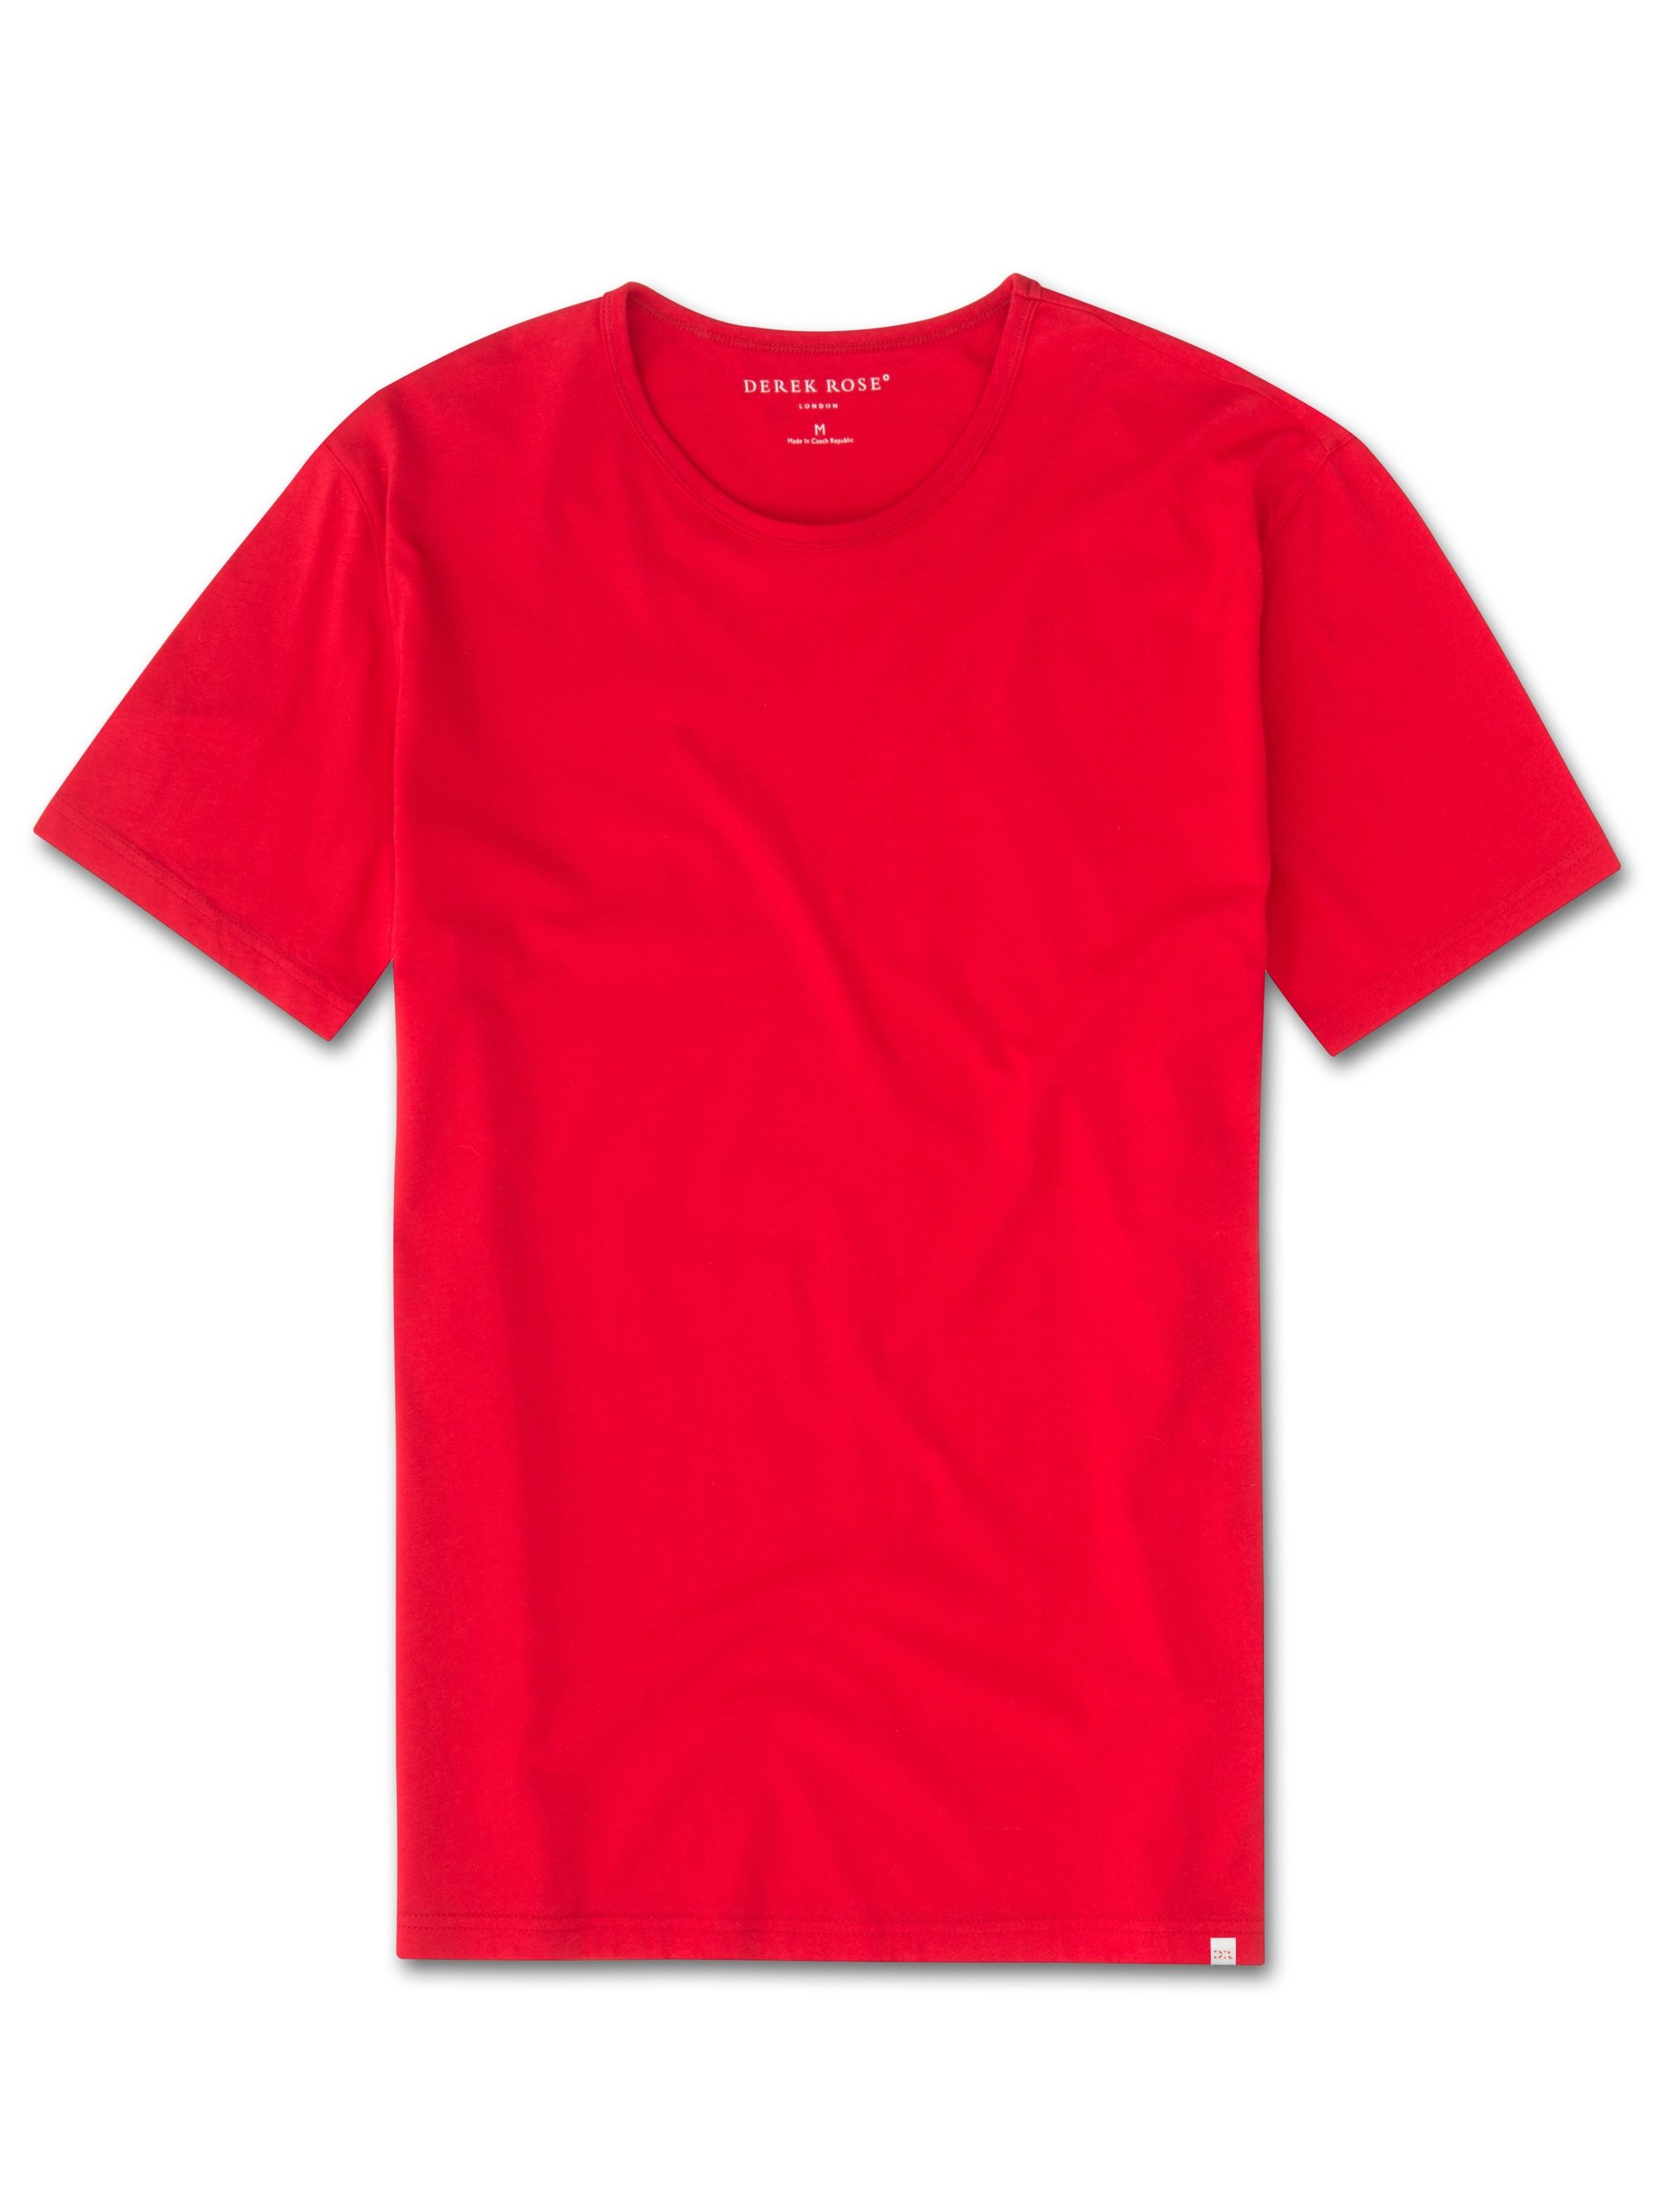 Men's Short Sleeve T-Shirt Riley 2 Pima Cotton Red